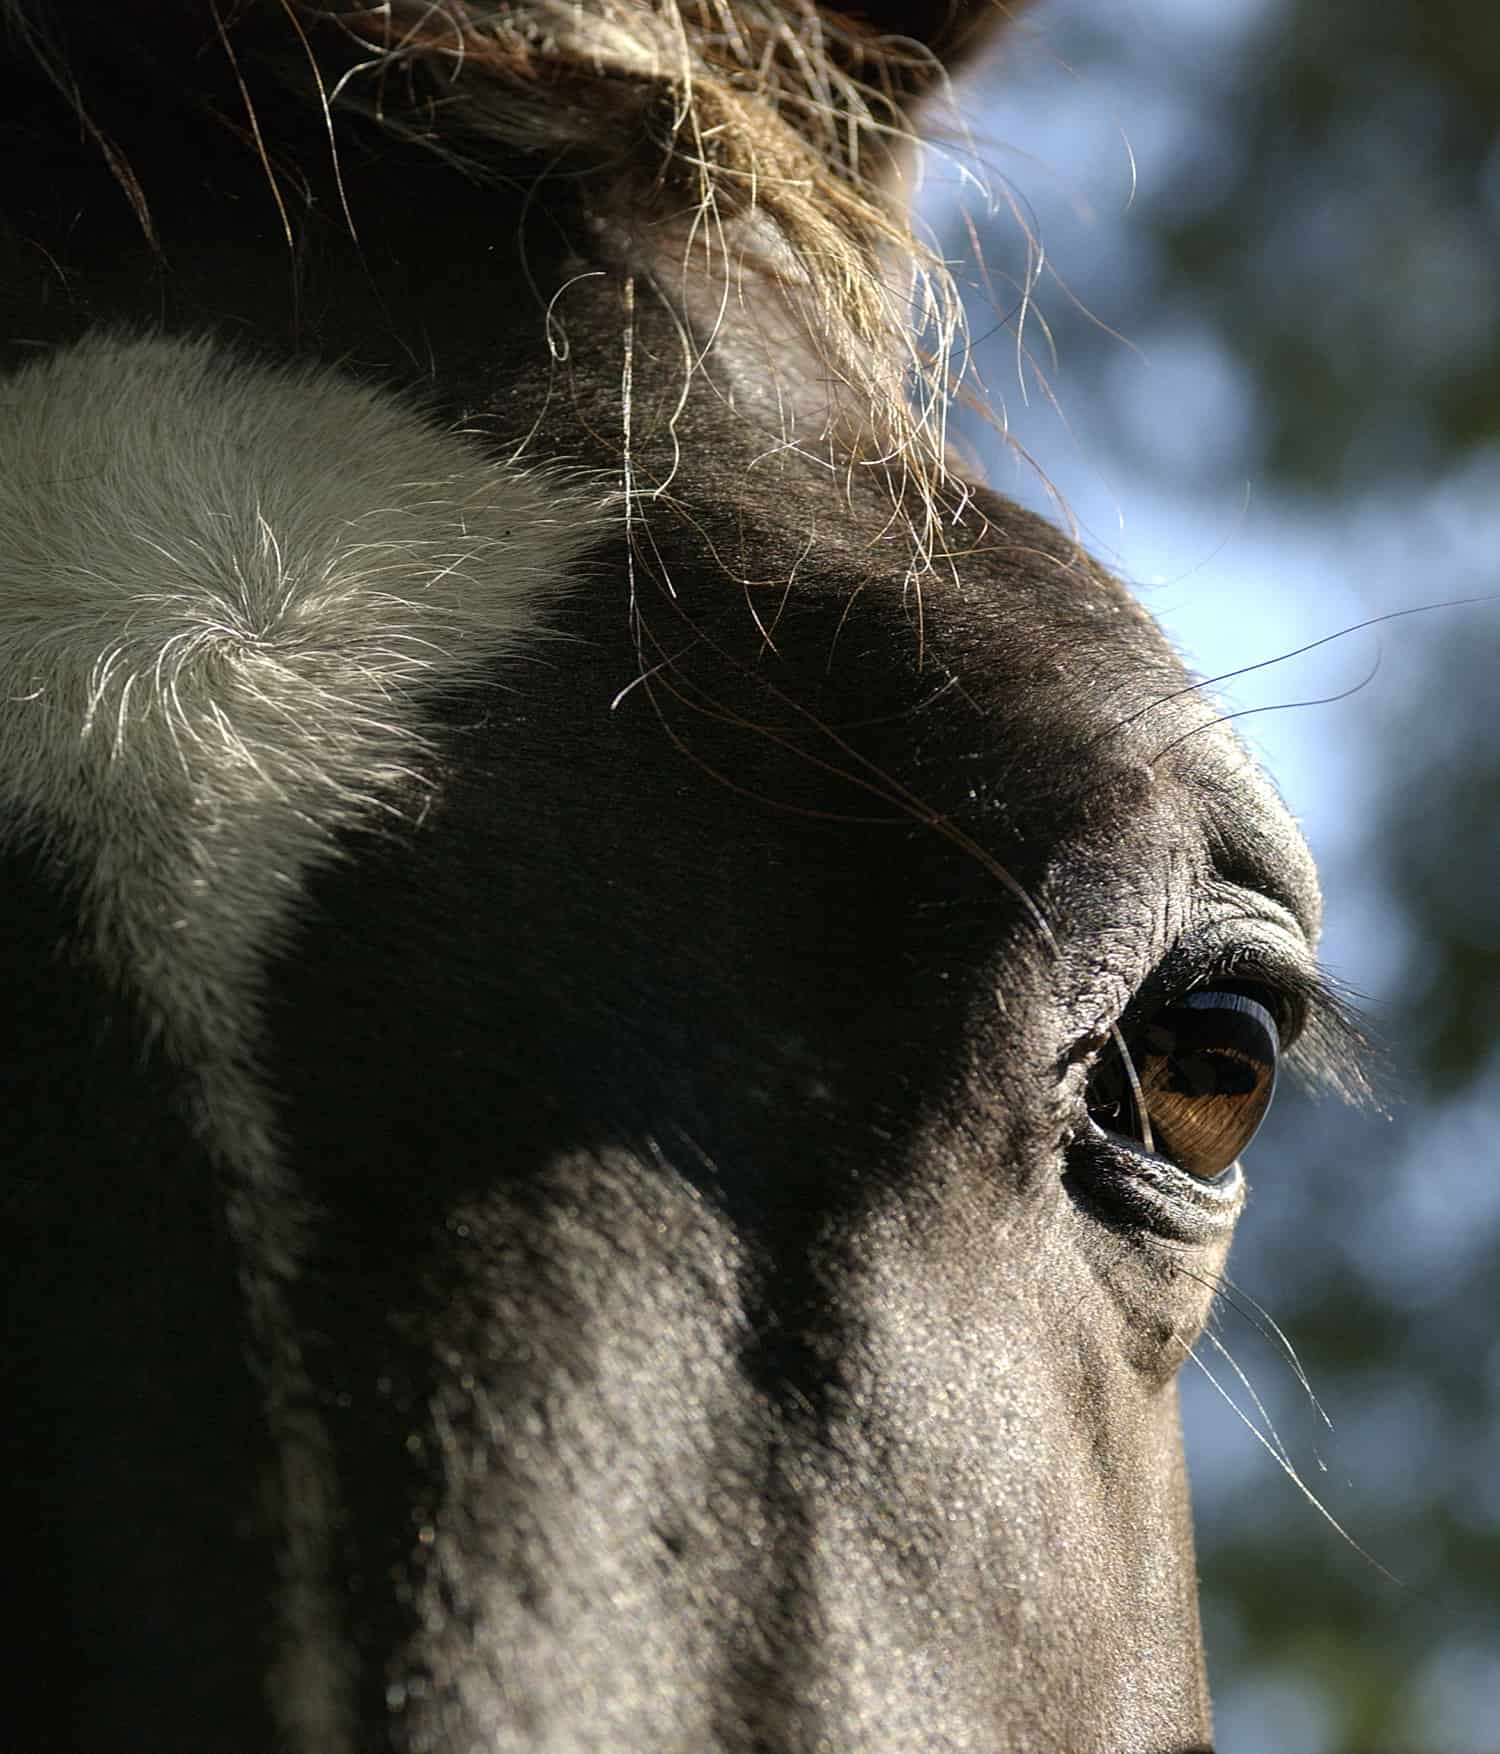 Equine Eye Anatomy And Physiology The Horse